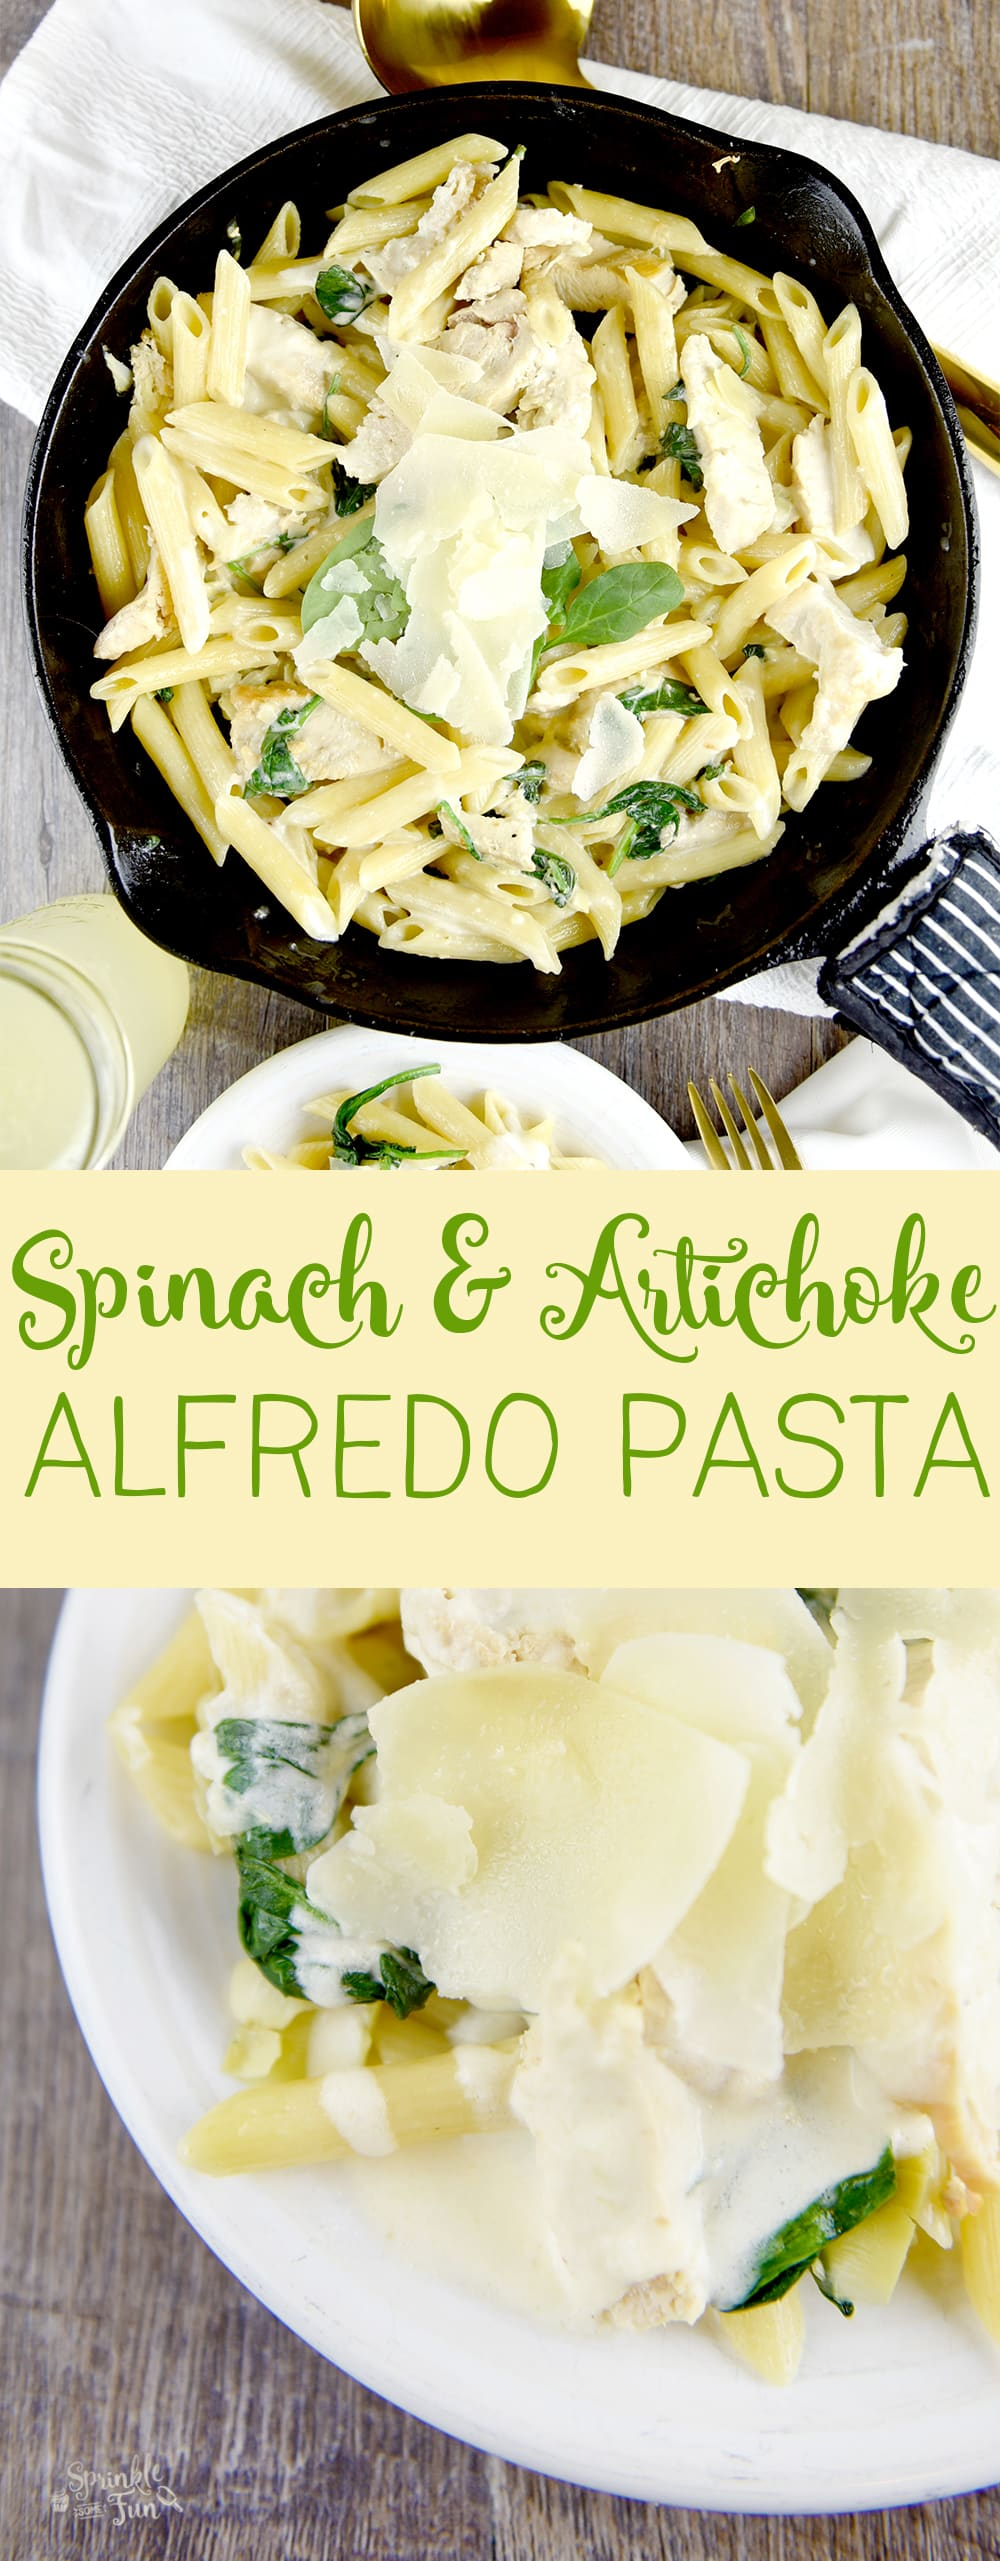 This Spinach & Artichoke Alfredo Pasta is sure to become a weeknight favorite dinner dish!  Perfect weeknight meal idea.